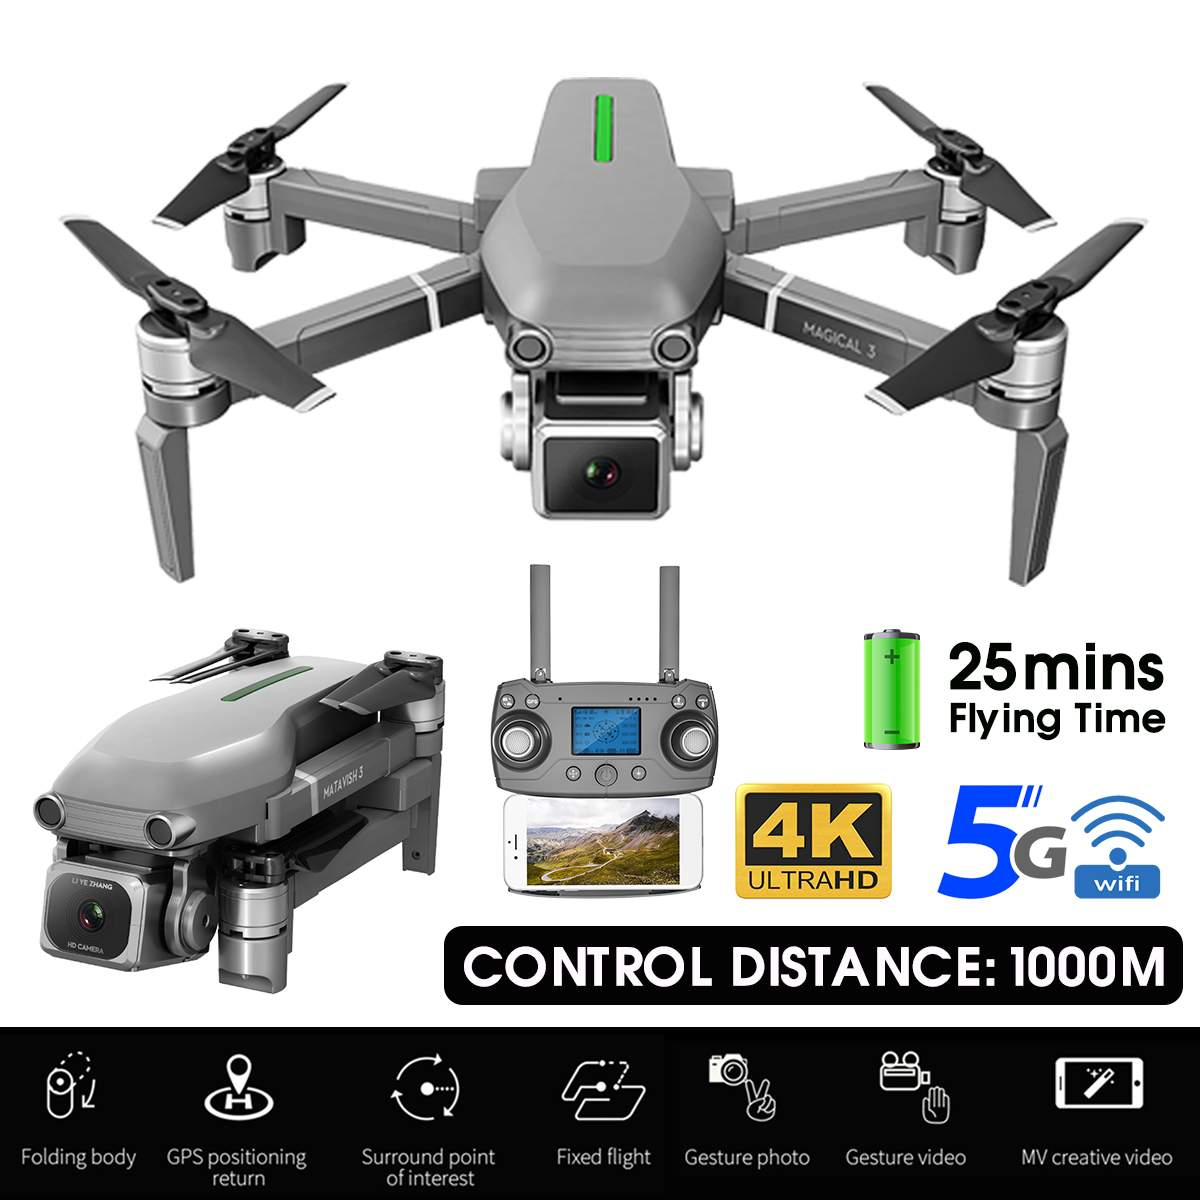 4K <font><b>5G</b></font> Camera <font><b>Drones</b></font> 1km Remote 600m/800m WIFI Image Transmission High Hold Mode Foldable Arm RC Quadcopter Real-time Positioning image